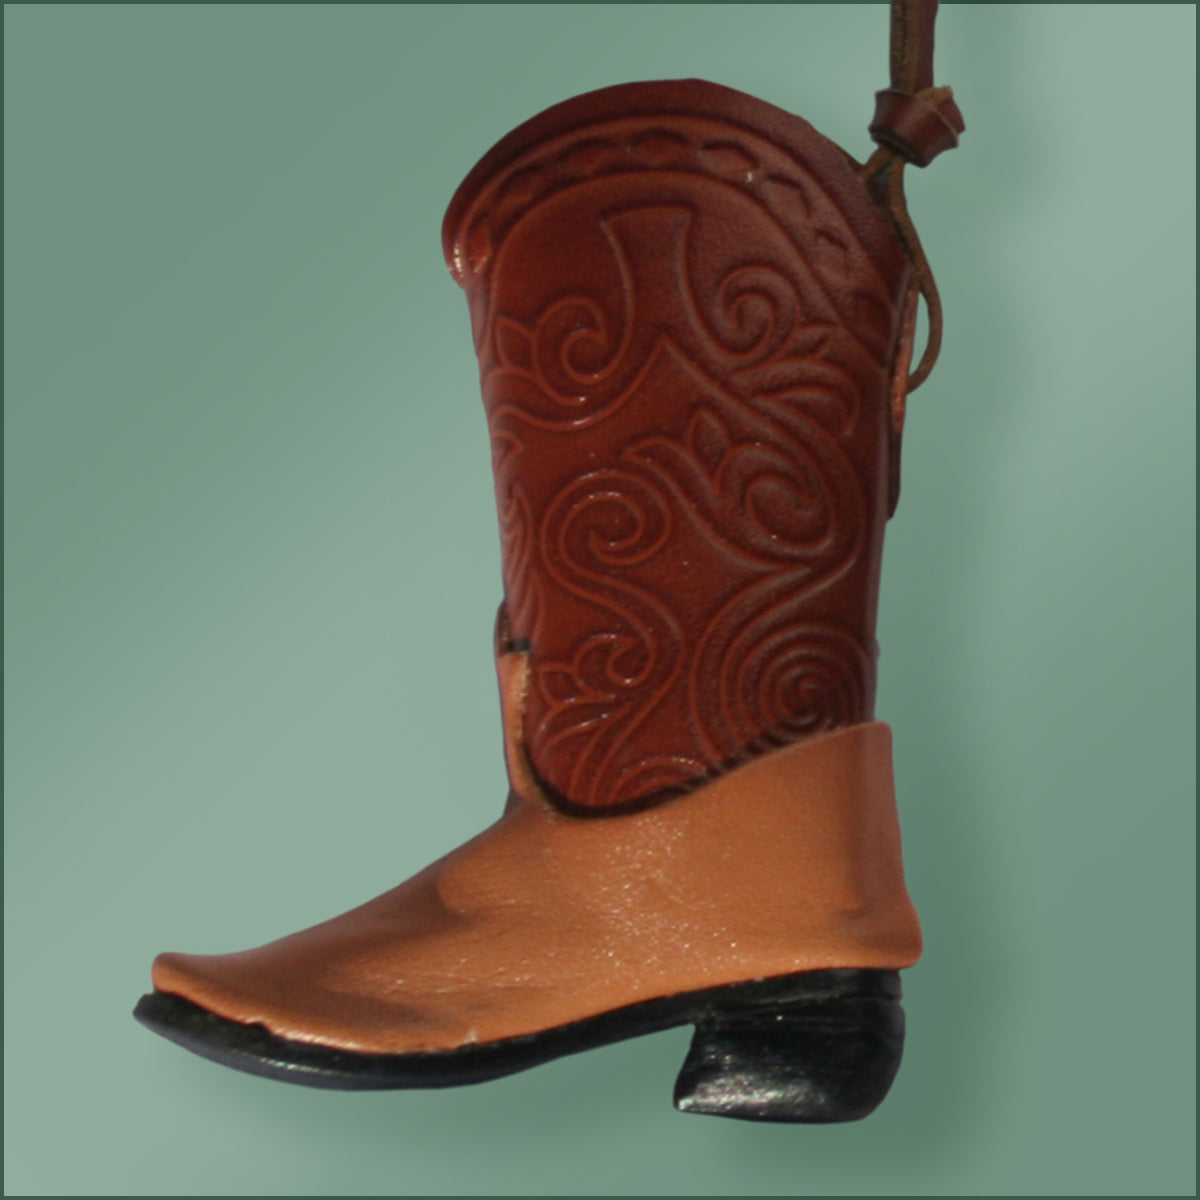 Leather Cowboy Boot Ornament - Brown/Tan